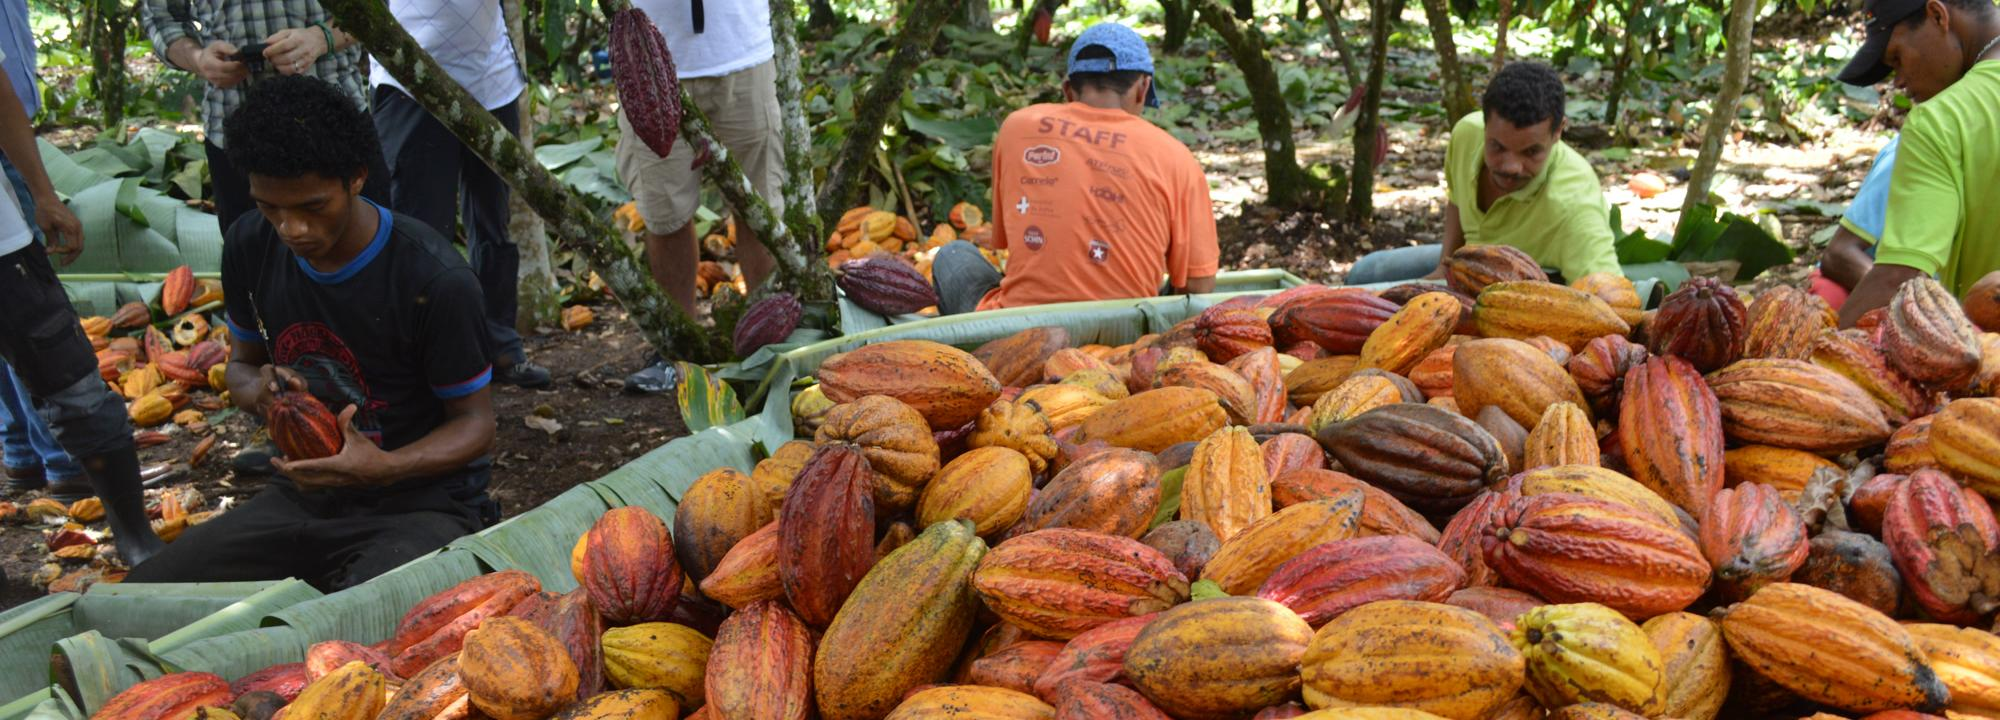 Cocoa pods, Brazil © Rainforest Alliance